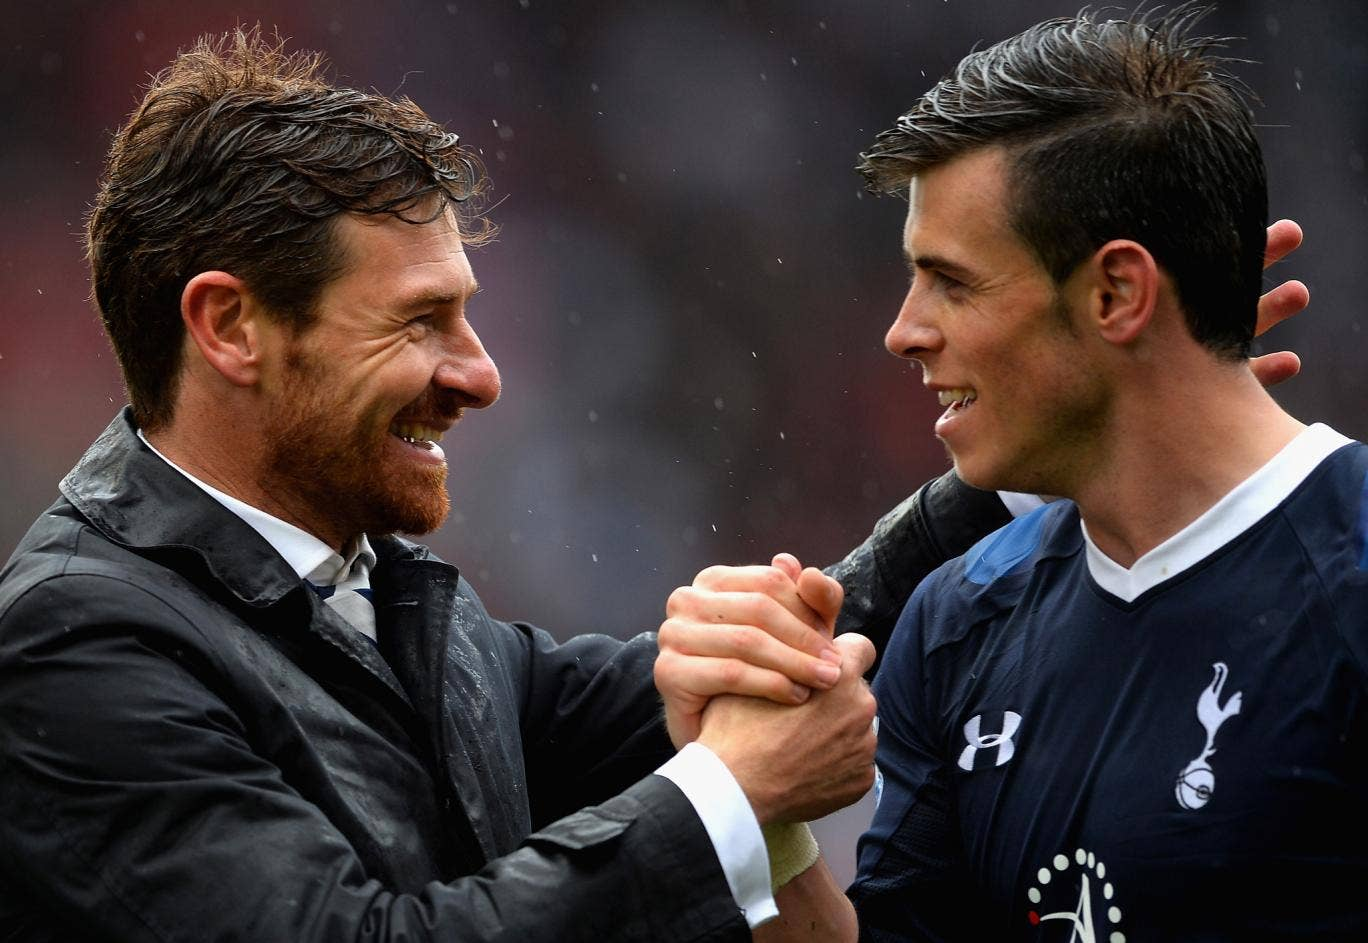 Andre Villas-Boas and Gareth Bale celebrate together but just how long will they both remain at Tottenham?